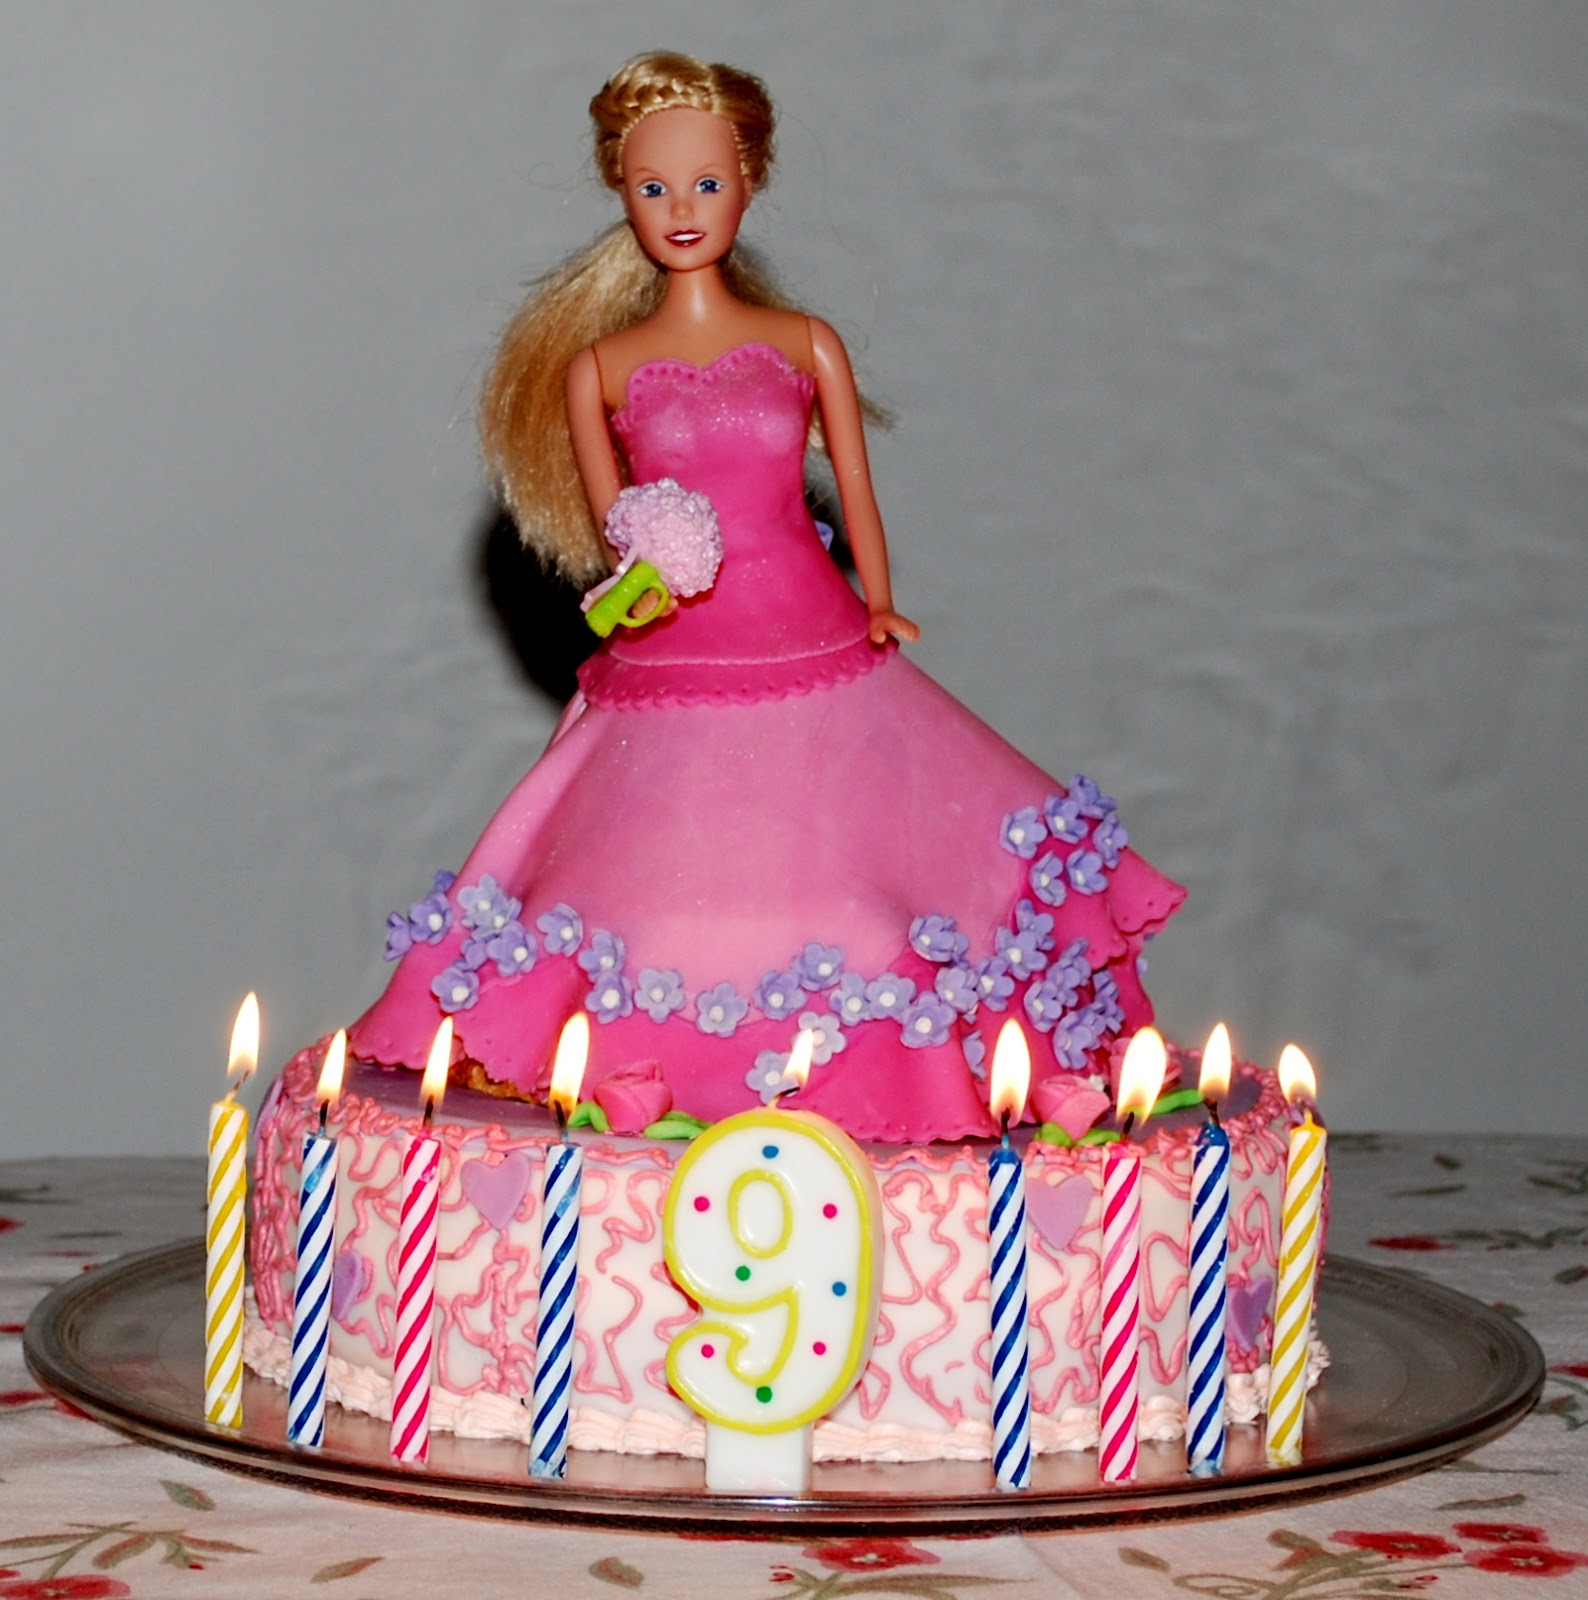 Barbie Cake Images Doll : A Portion to Share: Doll Cake